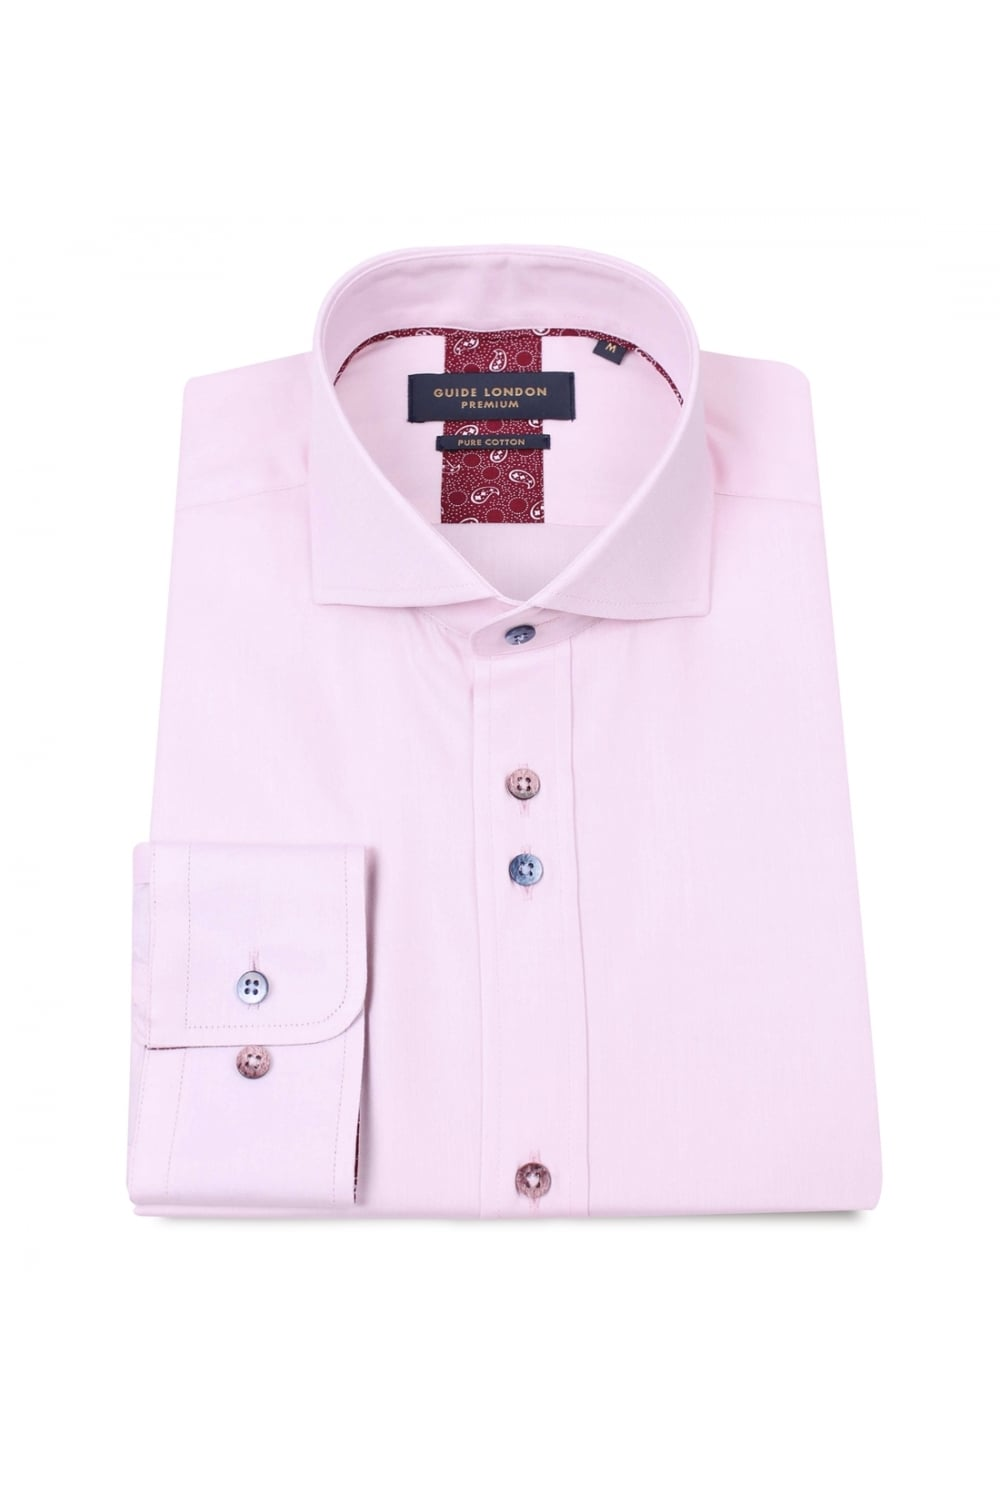 9eee847ebd3 GUIDE LONDON Guide London Men s LS.74625 Pink Shirt - Clothing from ...